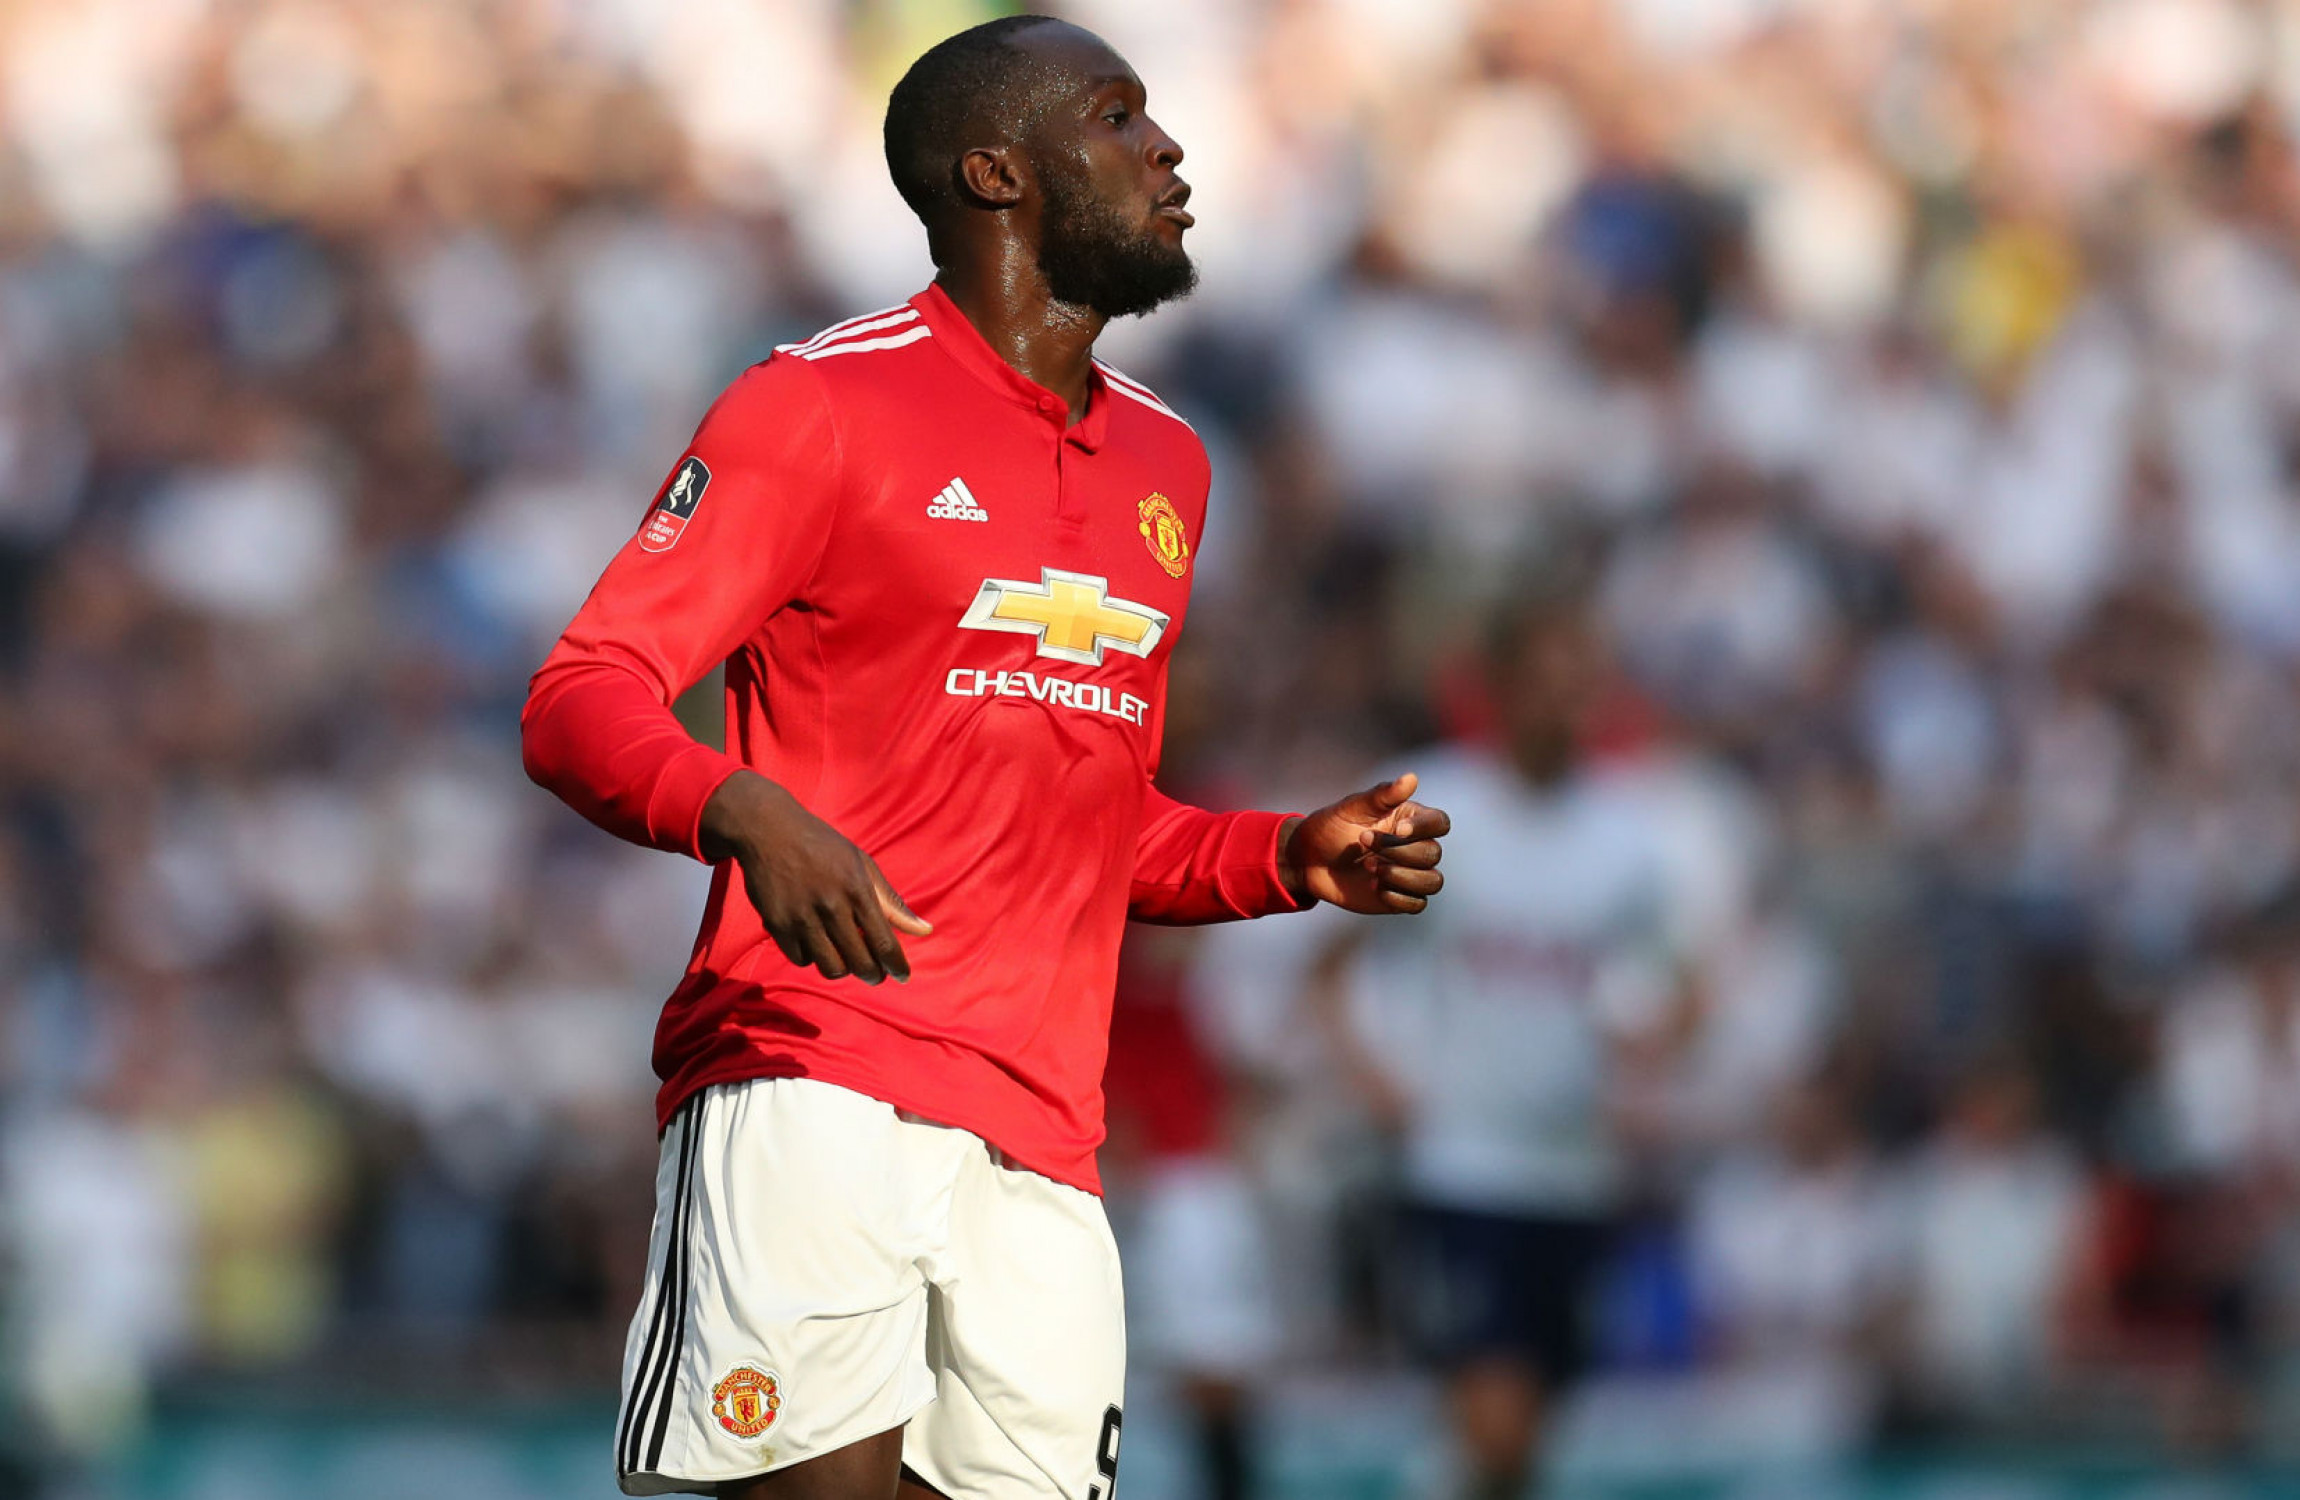 Investment not necessary for United to challenge City - Lukaku